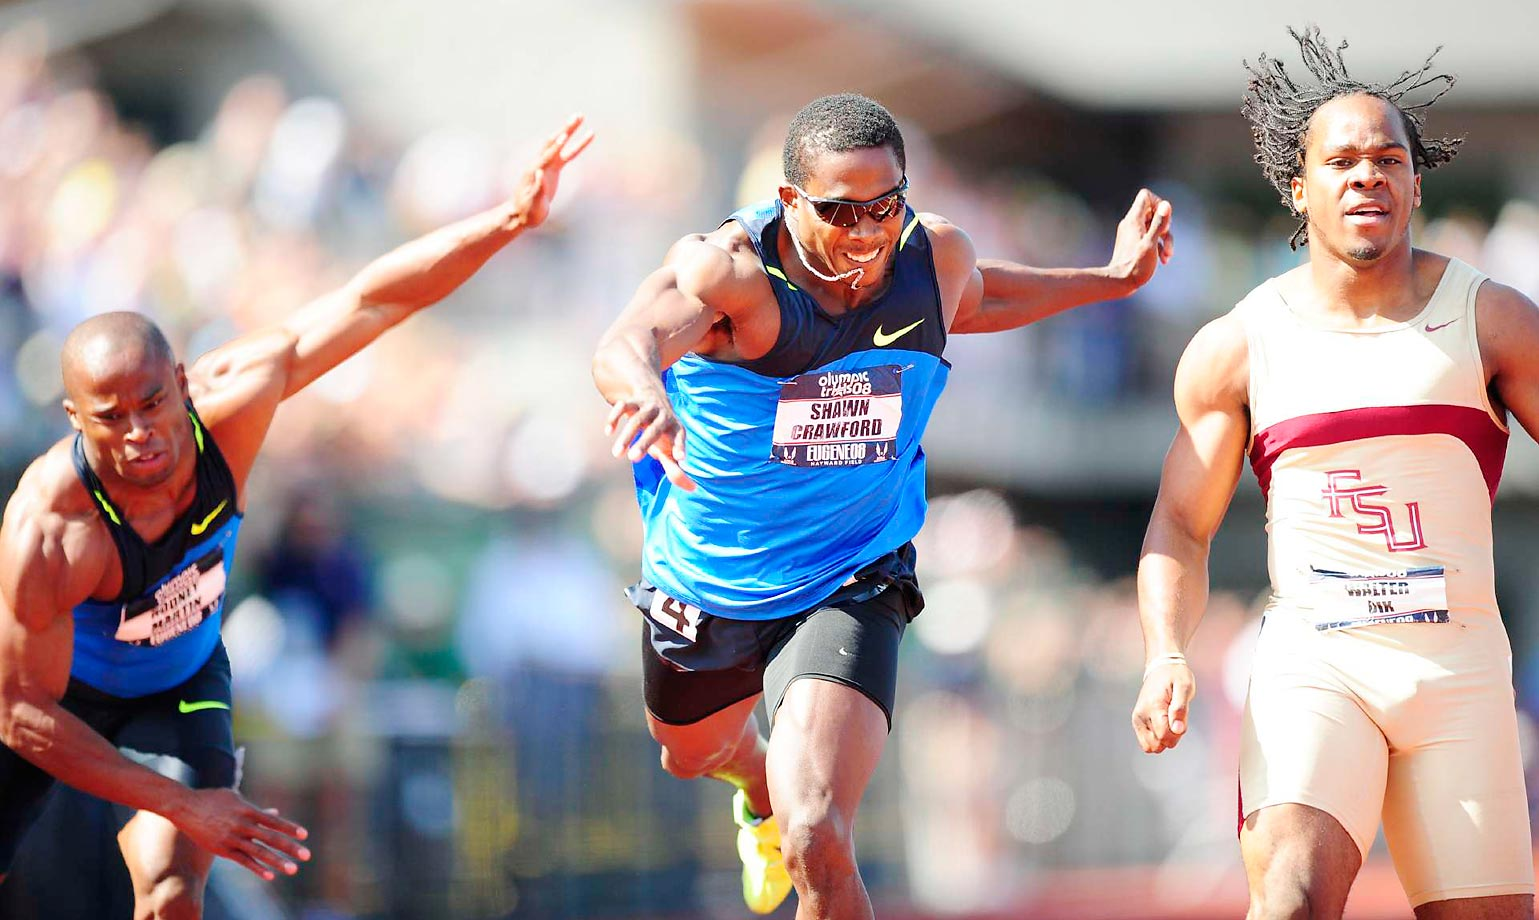 The 200-meter final at the 2008 U.S. Team Trials included Shawn Crawford and Walter Dix.